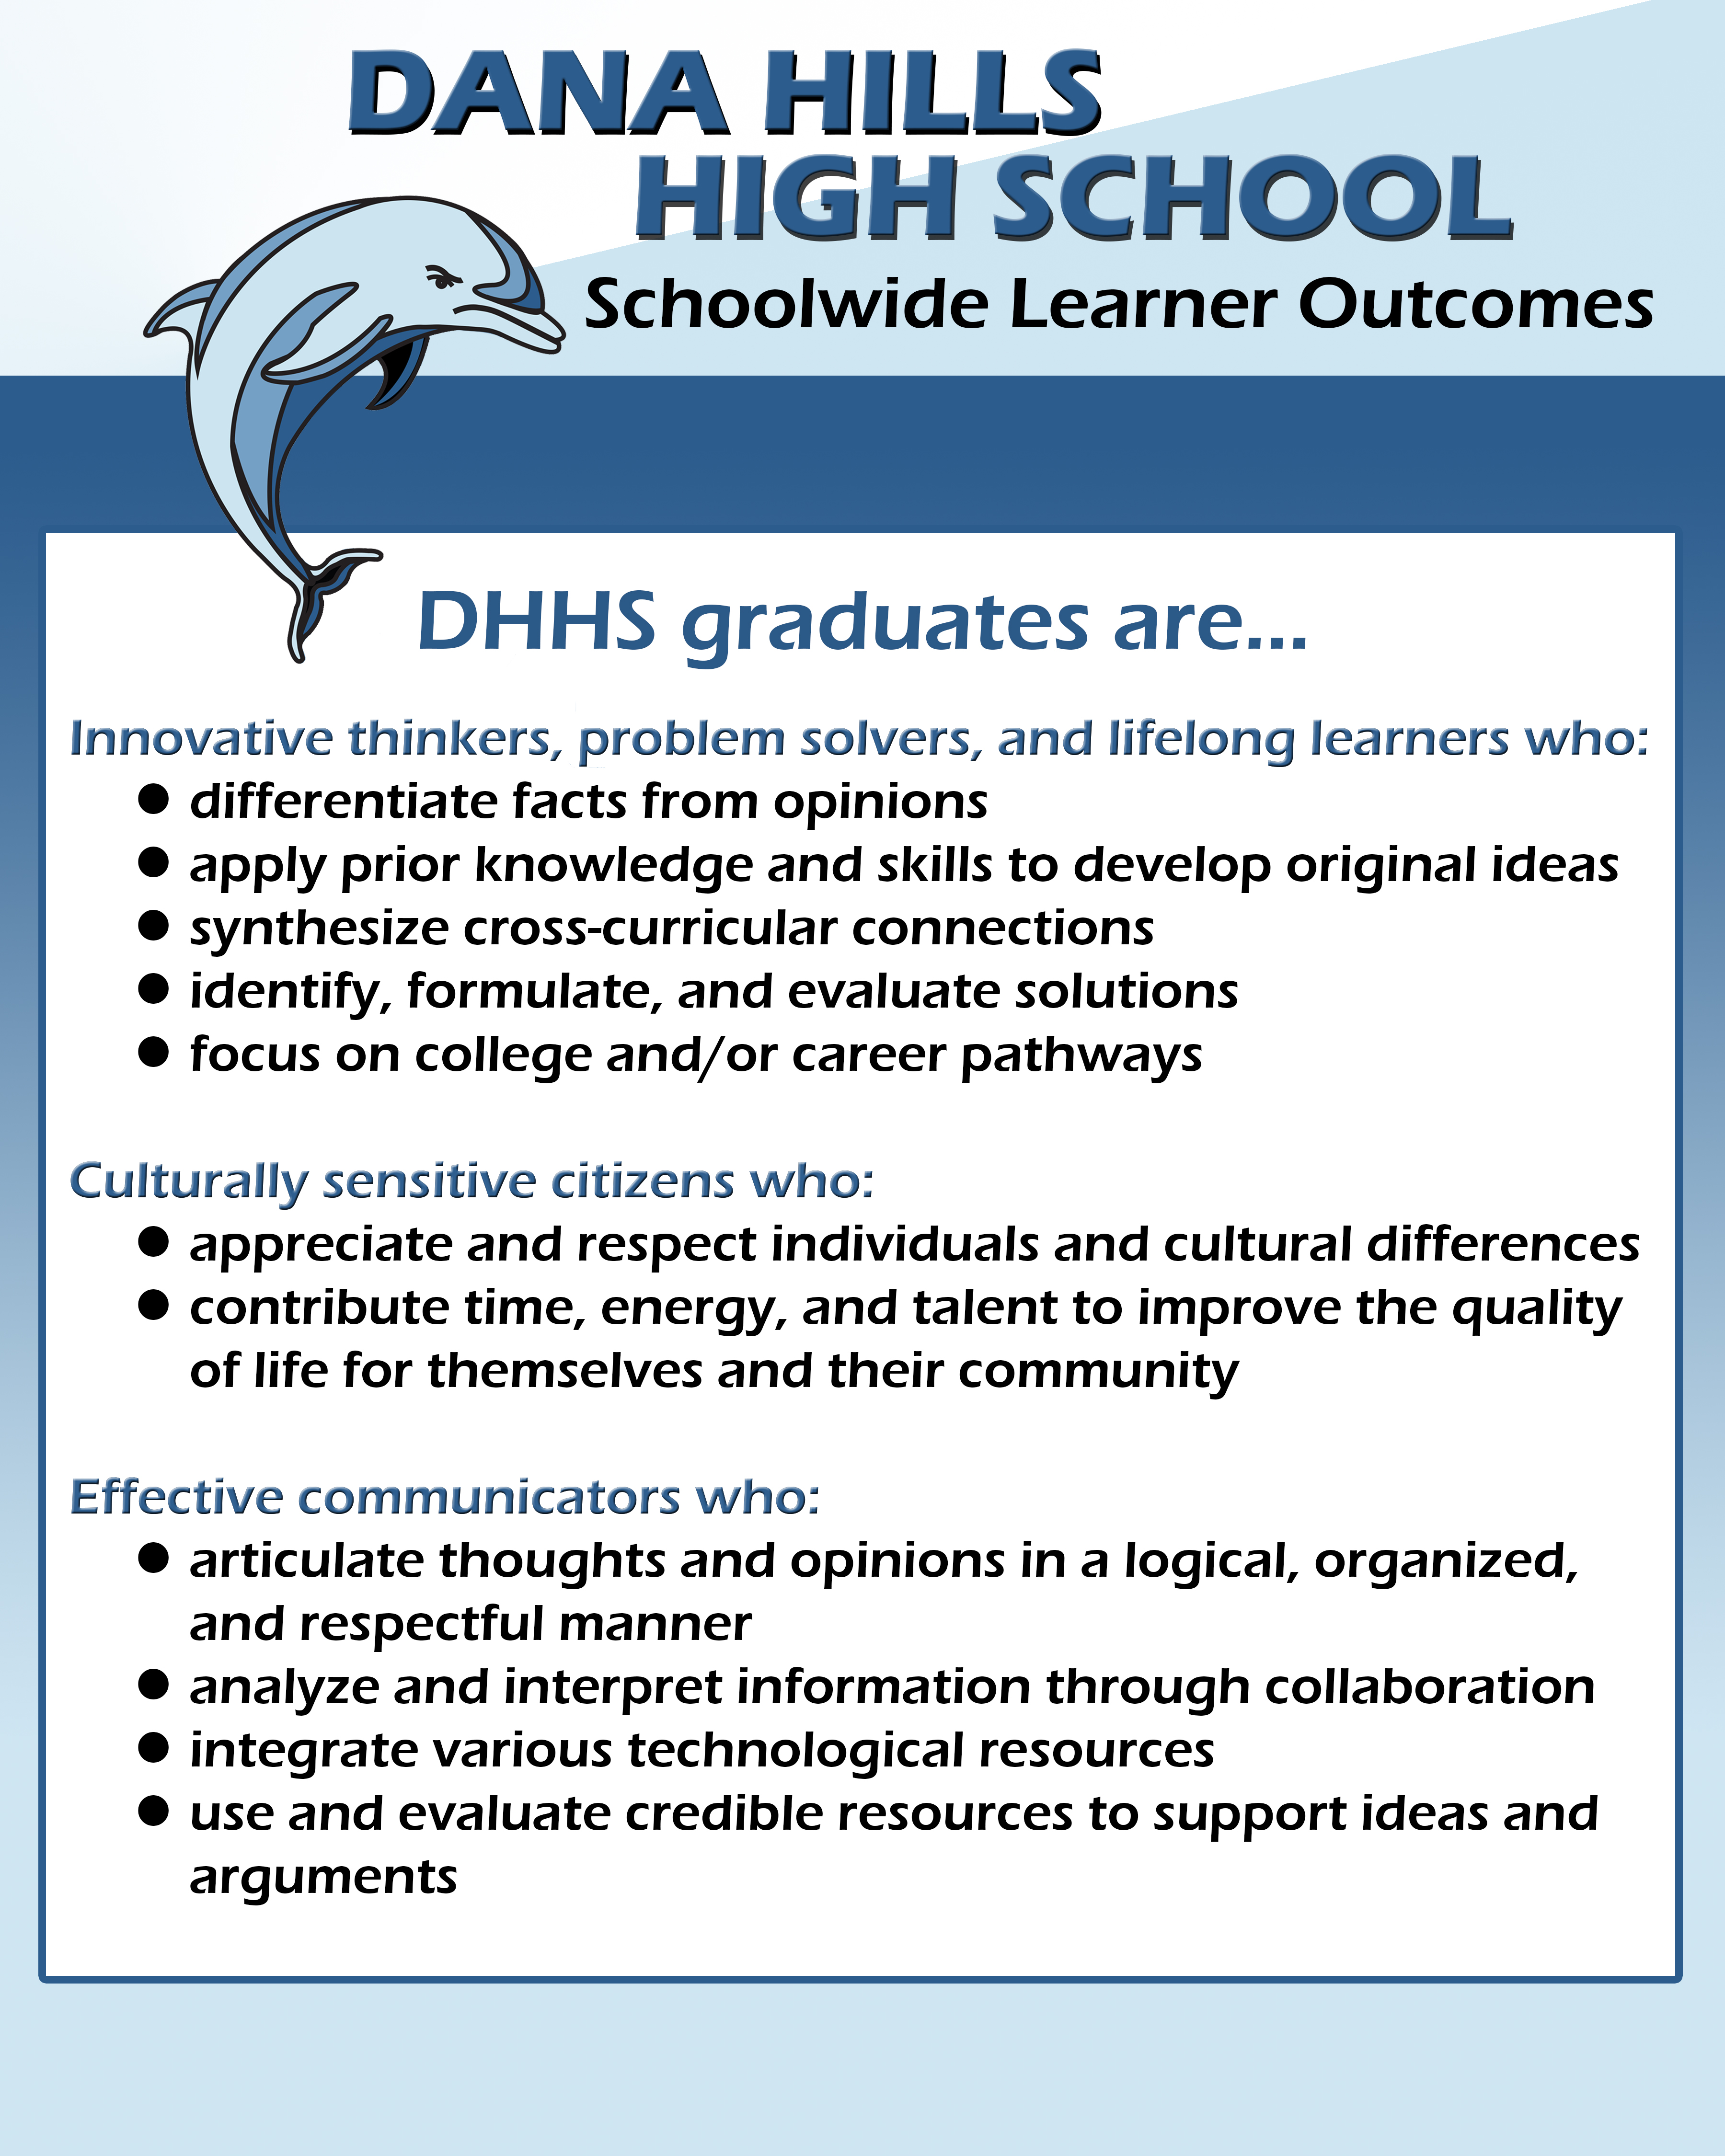 dhhs schoolwide learners DH (3).jpg